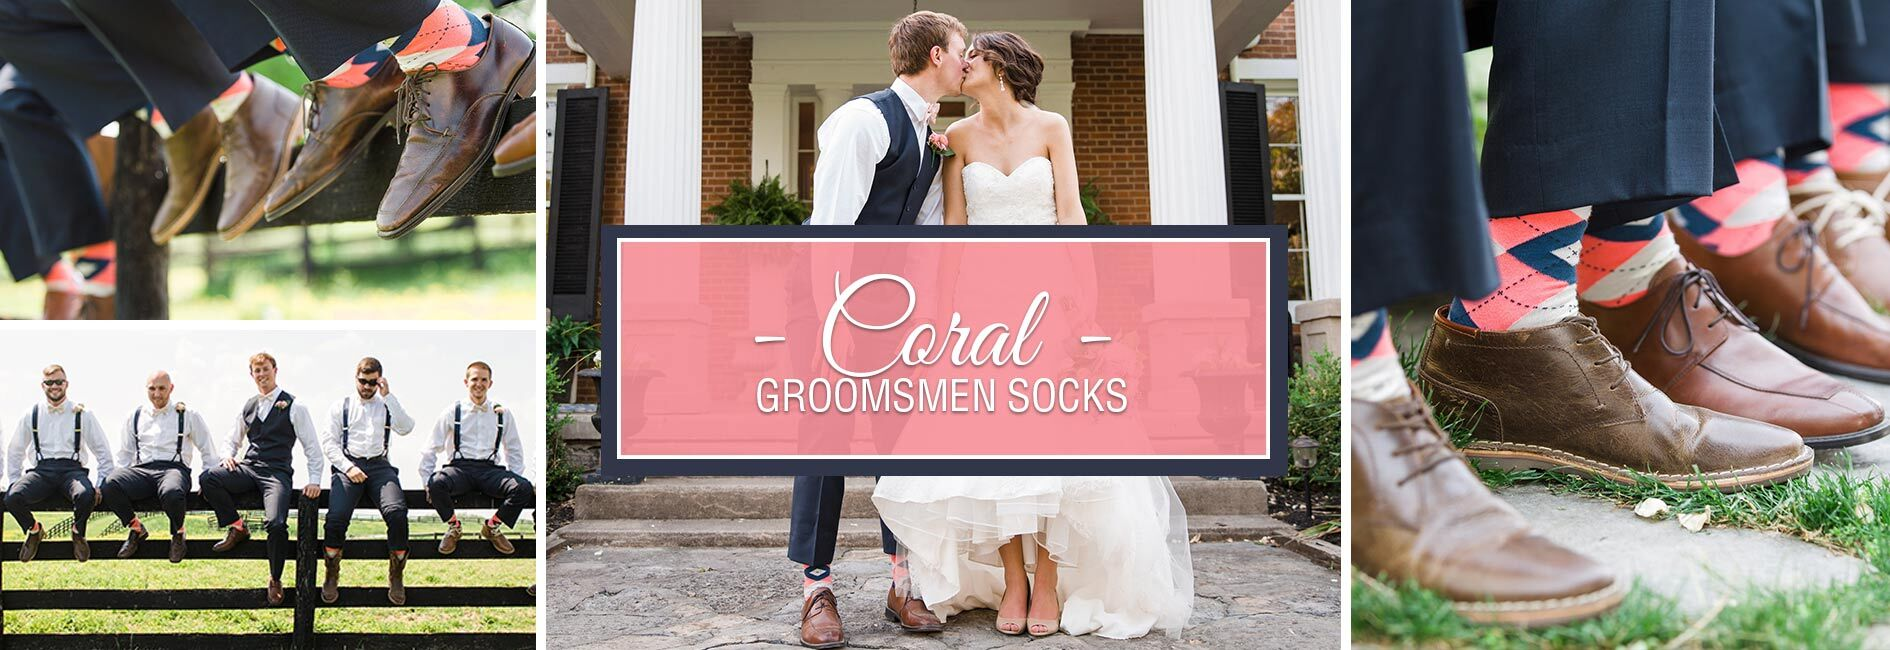 Coral Groomsmen Wedding Socks Banner